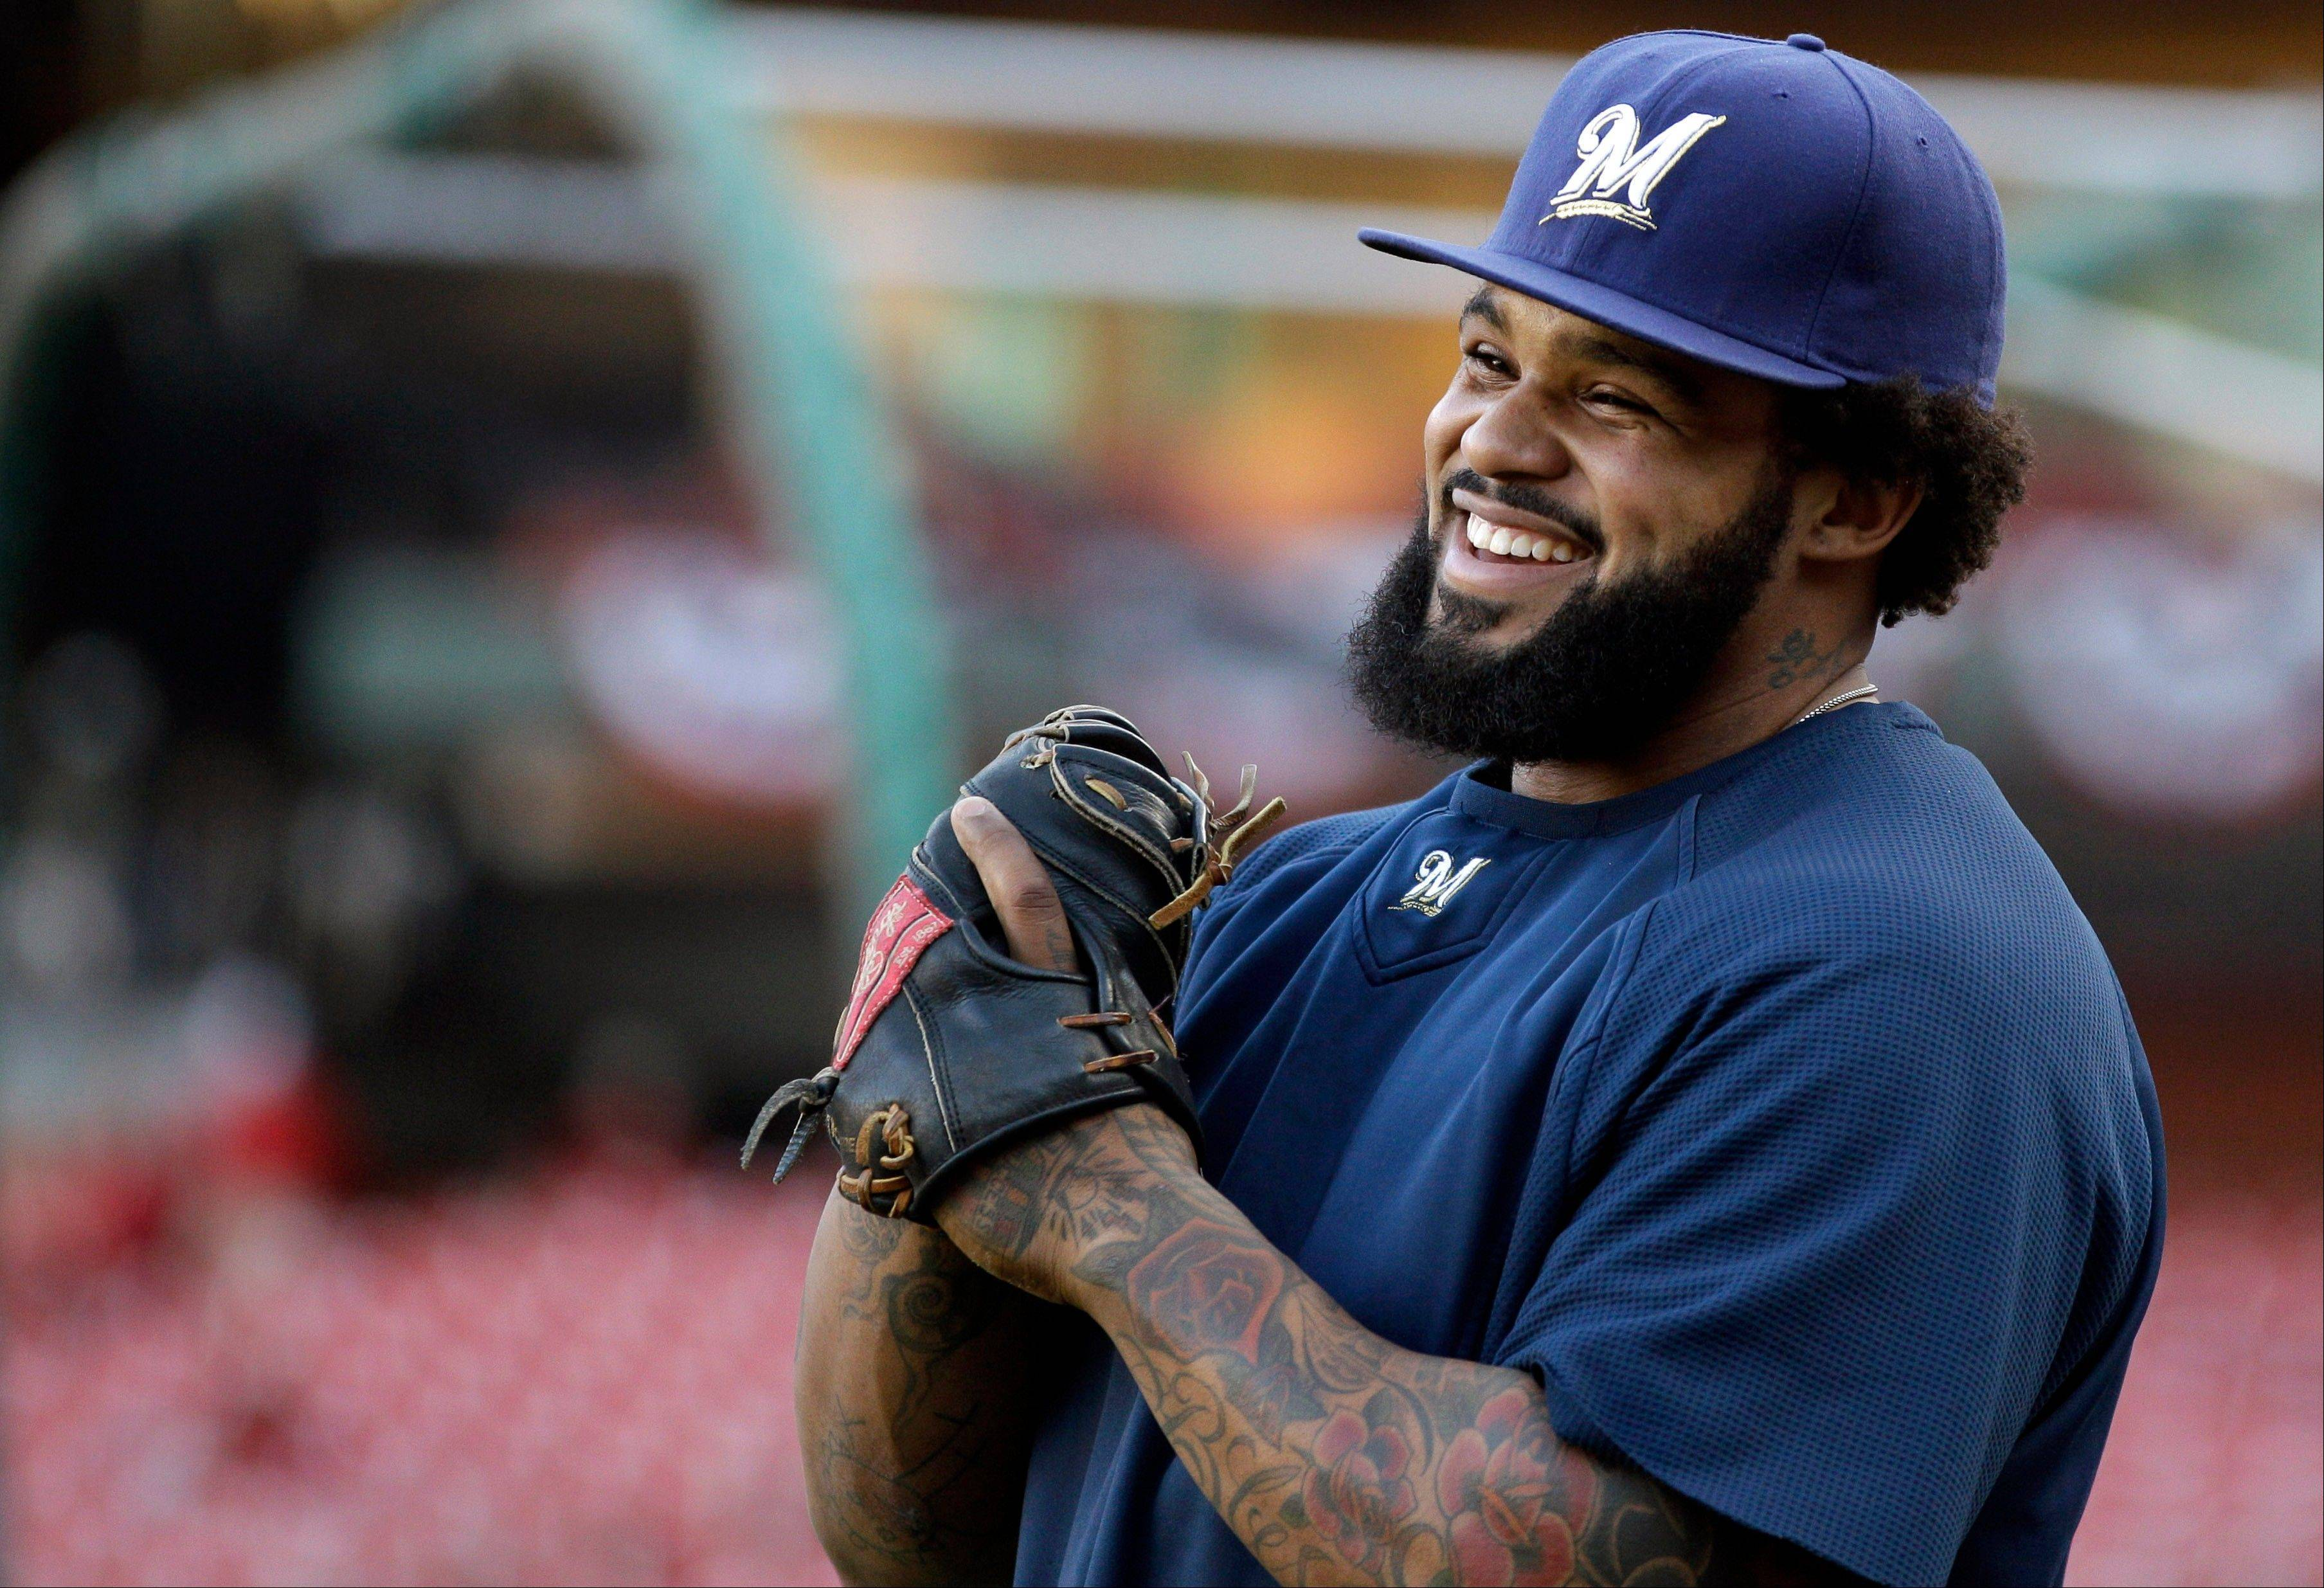 Sox on outs after Tigers go 'all in' with Fielder signing